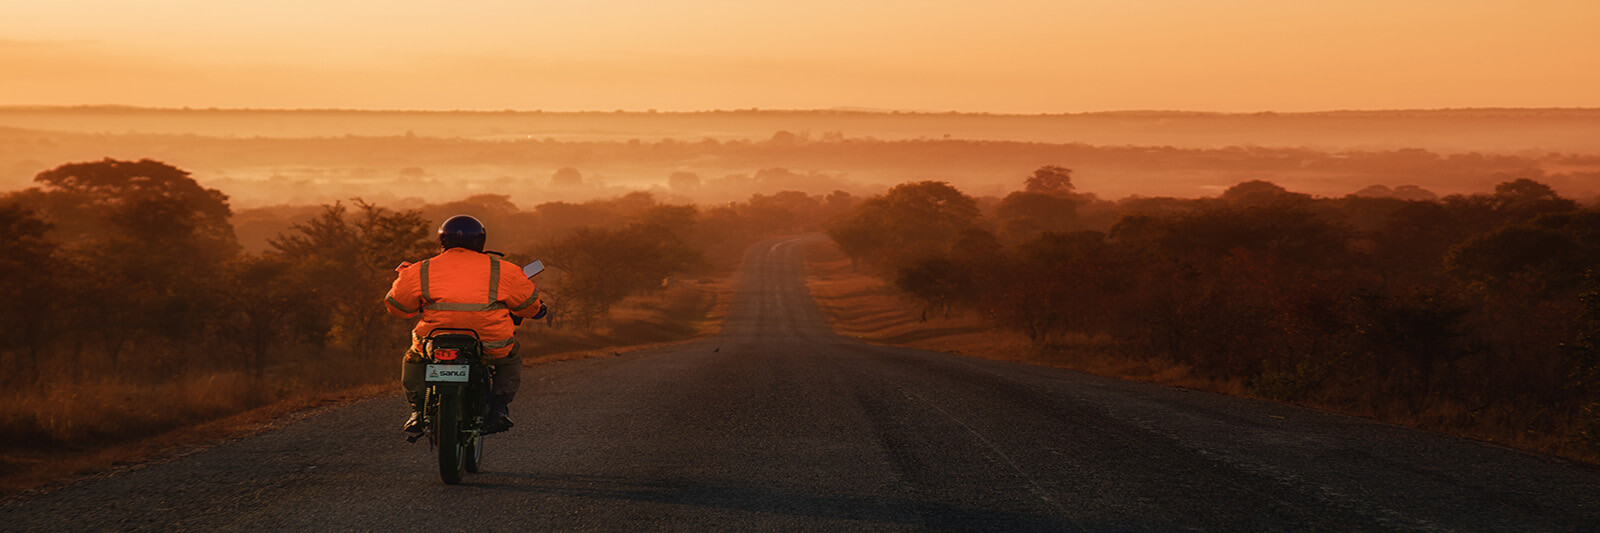 Motorcyclist on the Great East Road in Chinyunyu, Zambia